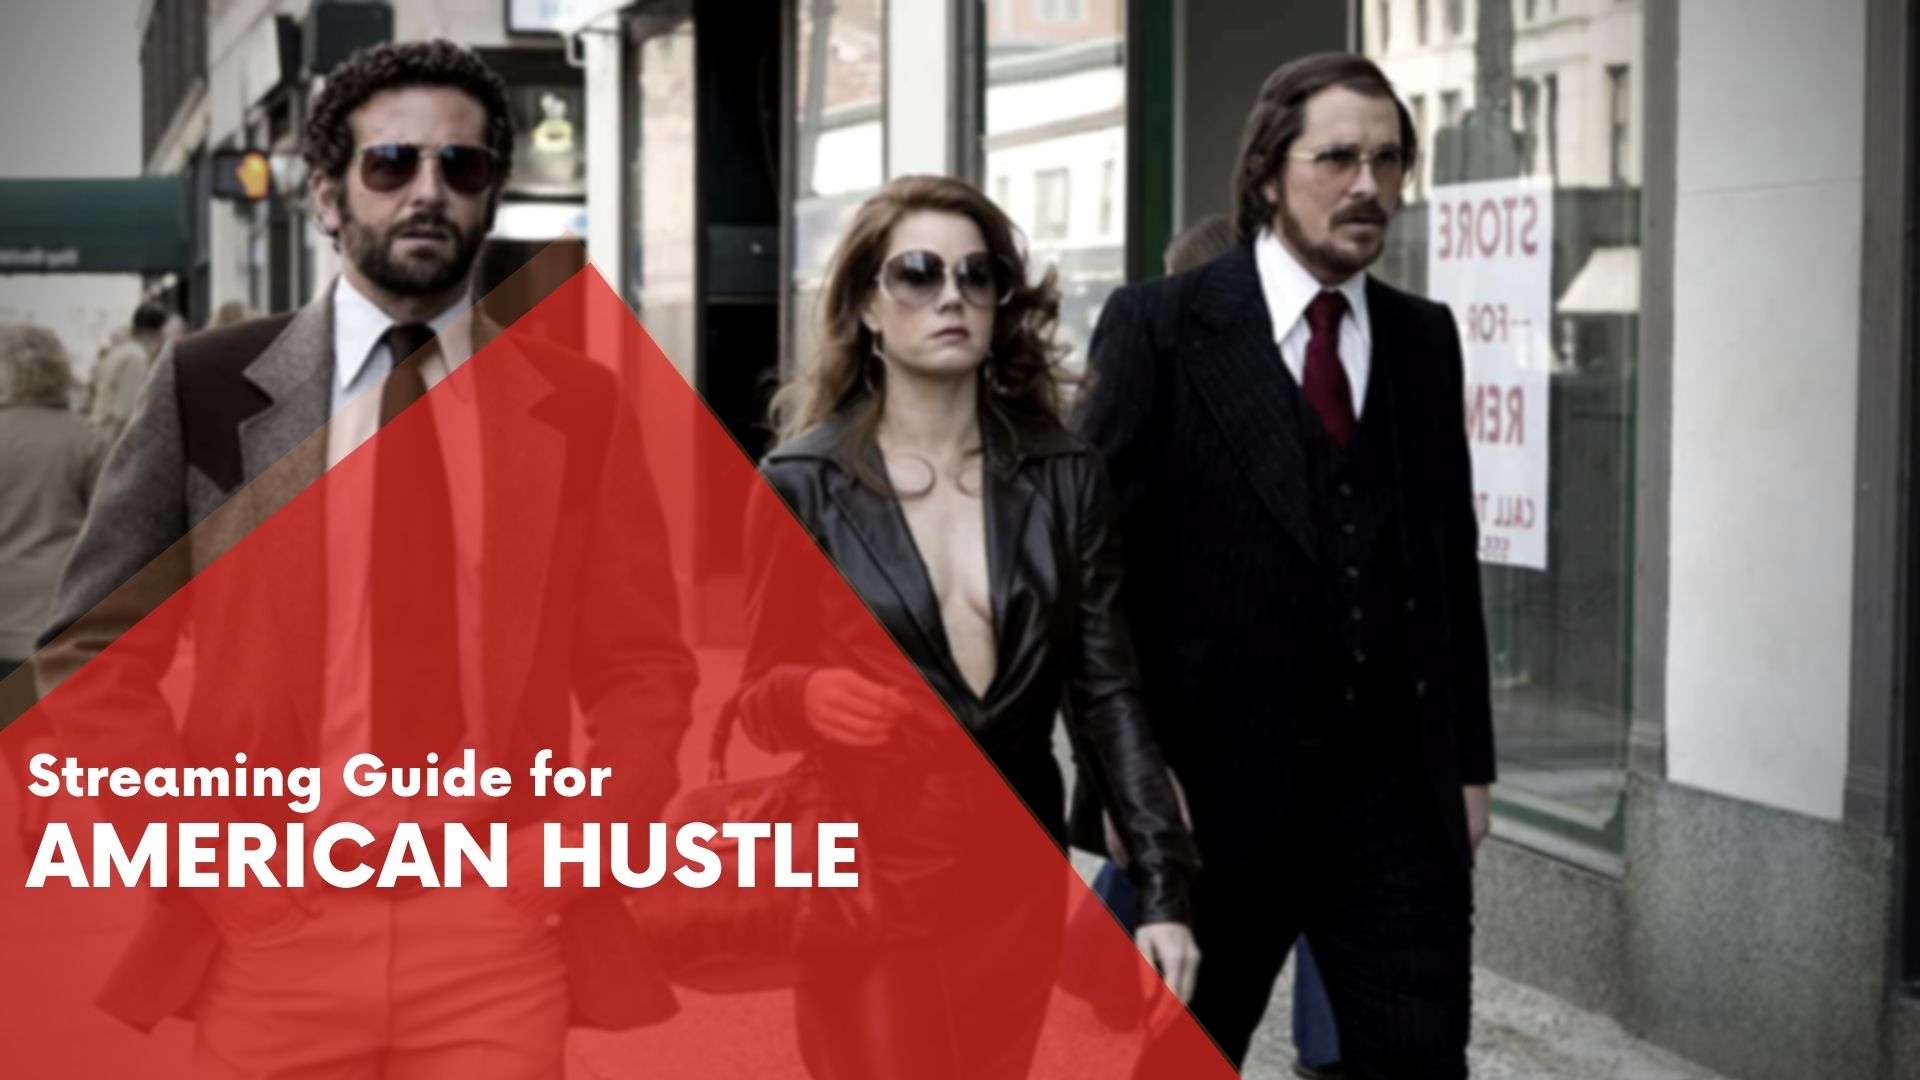 Answering if American Hustle is available on Hulu